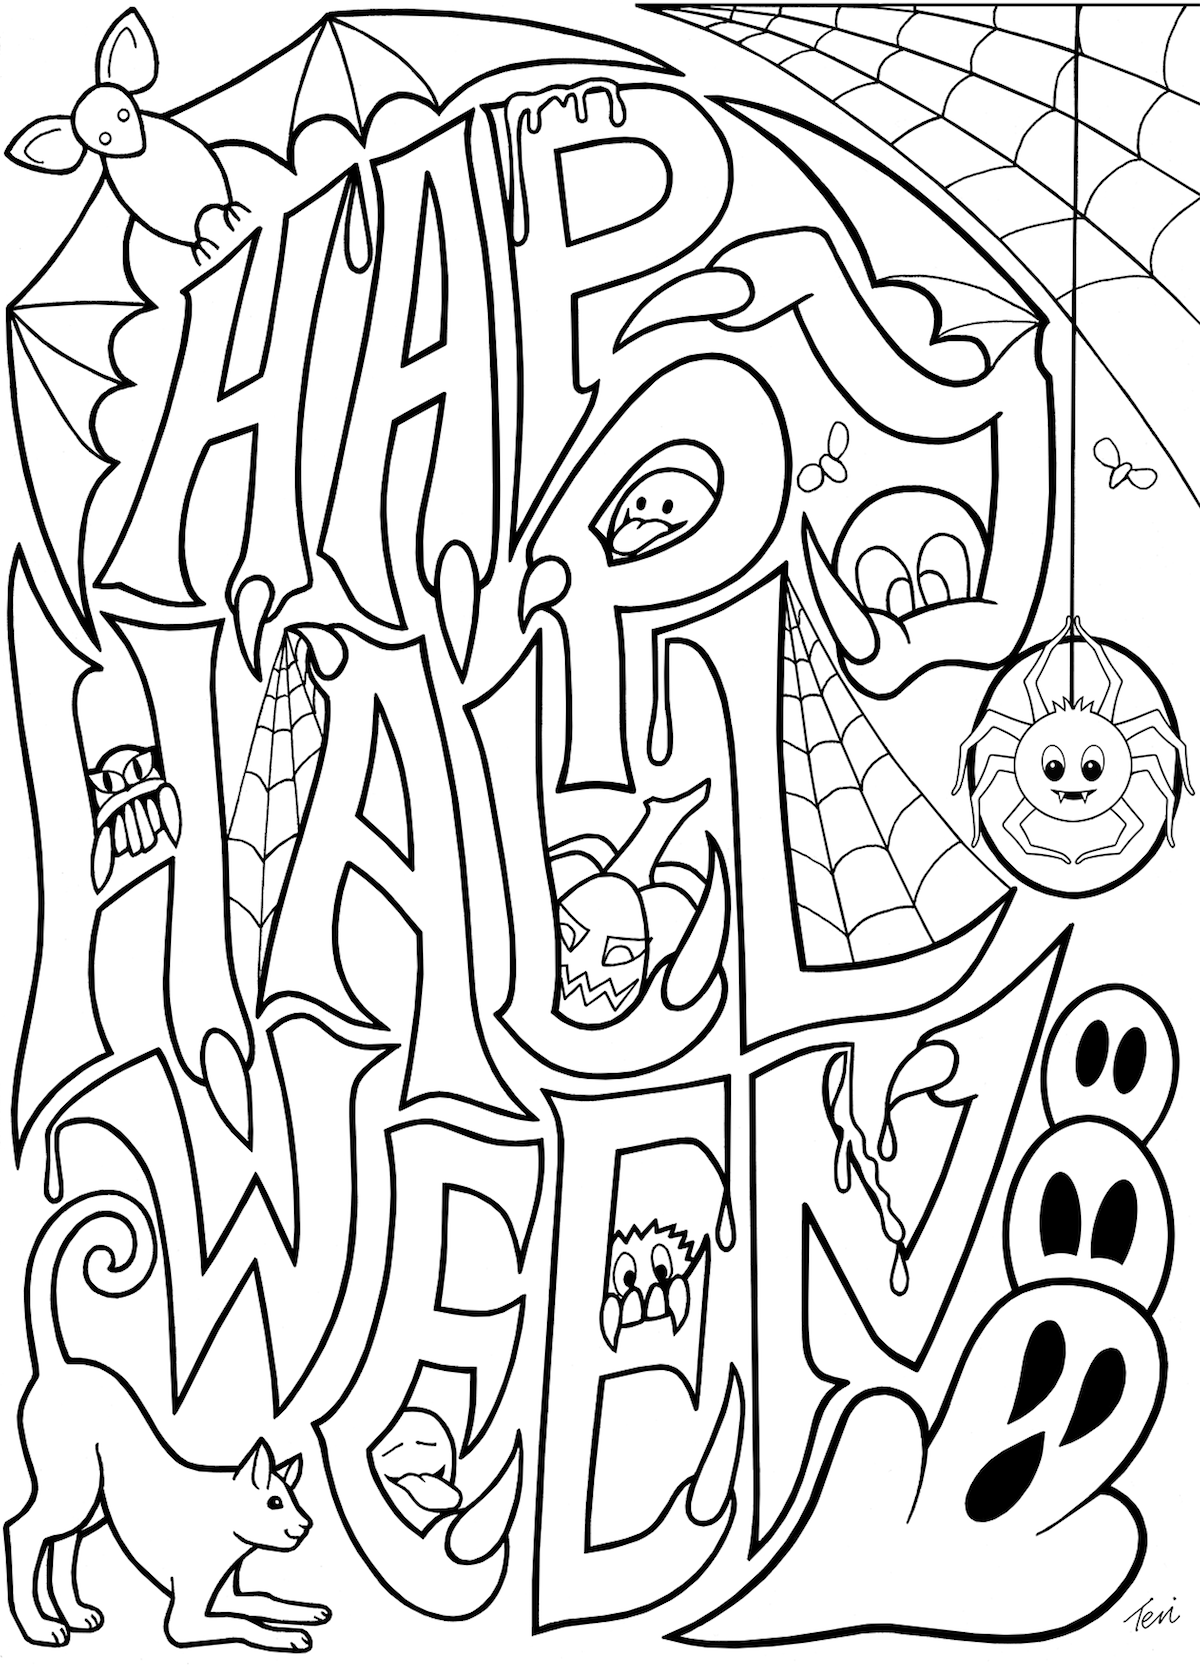 printable halloween coloring pages free halloween coloring pages archives printable coloring halloween pages